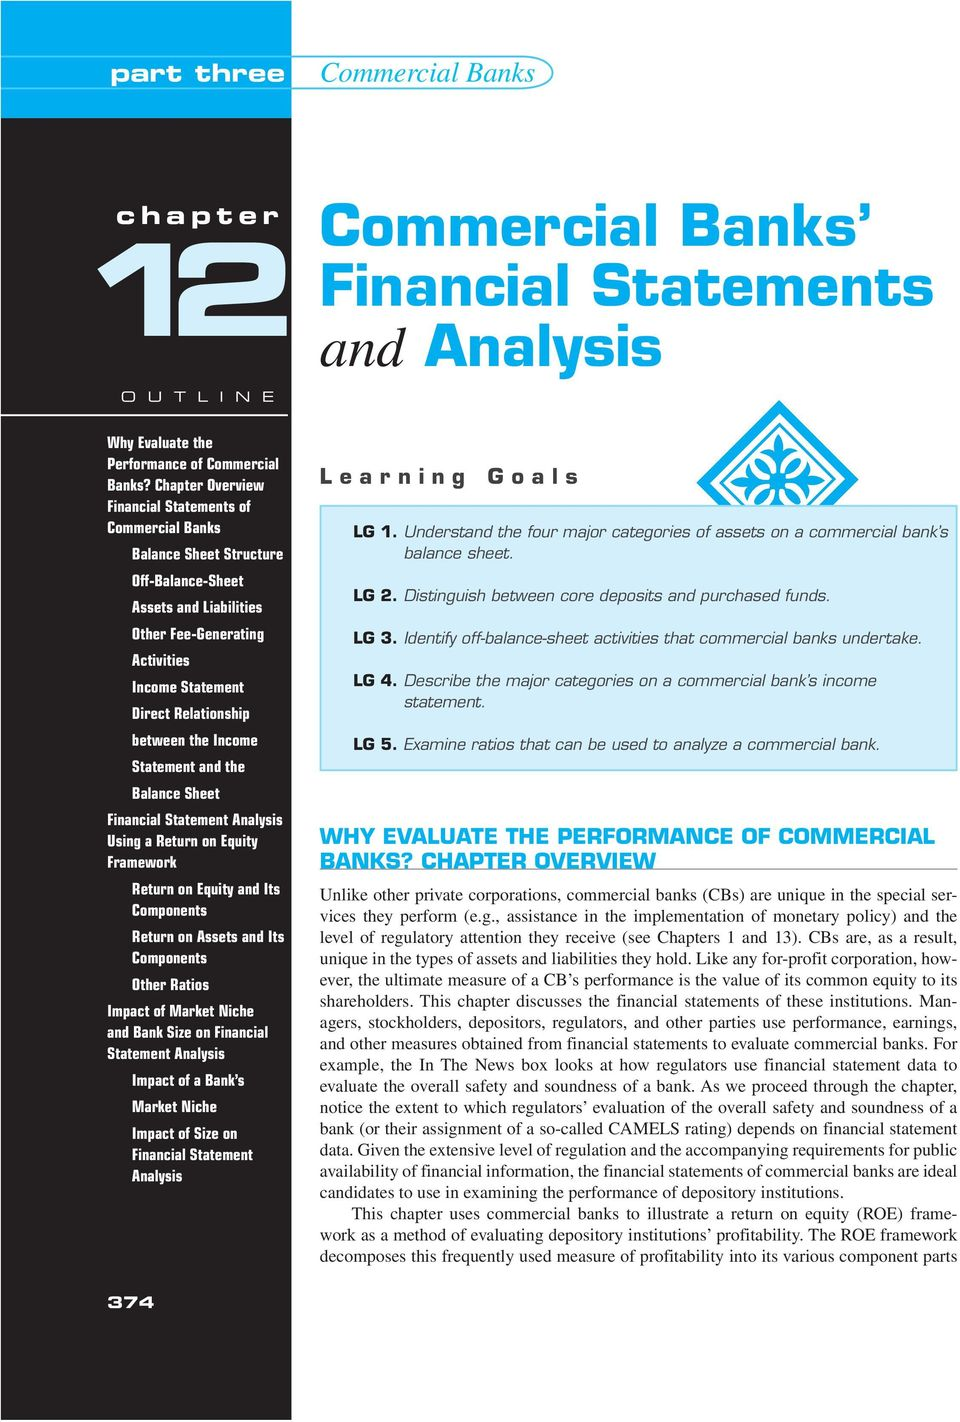 measuring public ratings' impact on financial The challenge of measuring financial impacts from investments in corporate social performance  how fortune 500 cfos and analysts measure corporate performance undp public-private partnerships for the urban environment, yale university  the challenge of measuring financial impacts from investments in corporate social performance.